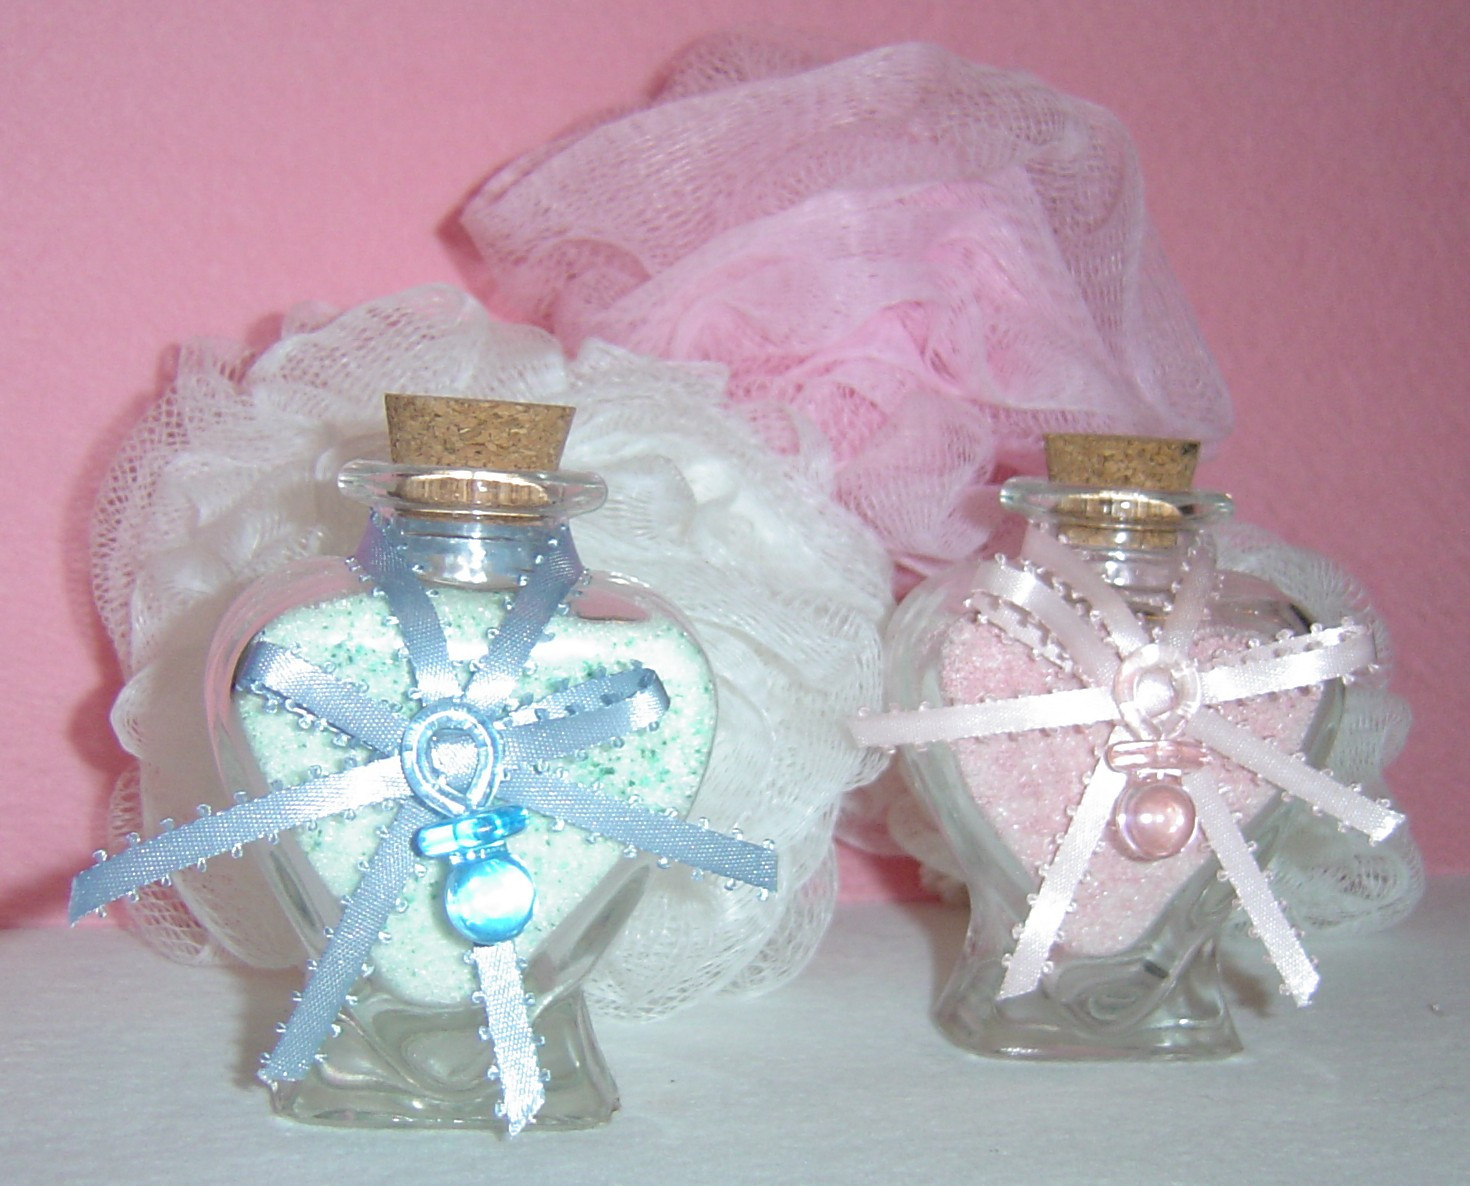 Baby Shower Giveaway Gift Ideas  Baby Shower Giveaways Ideas MARGUSRIGA Baby Party Gift